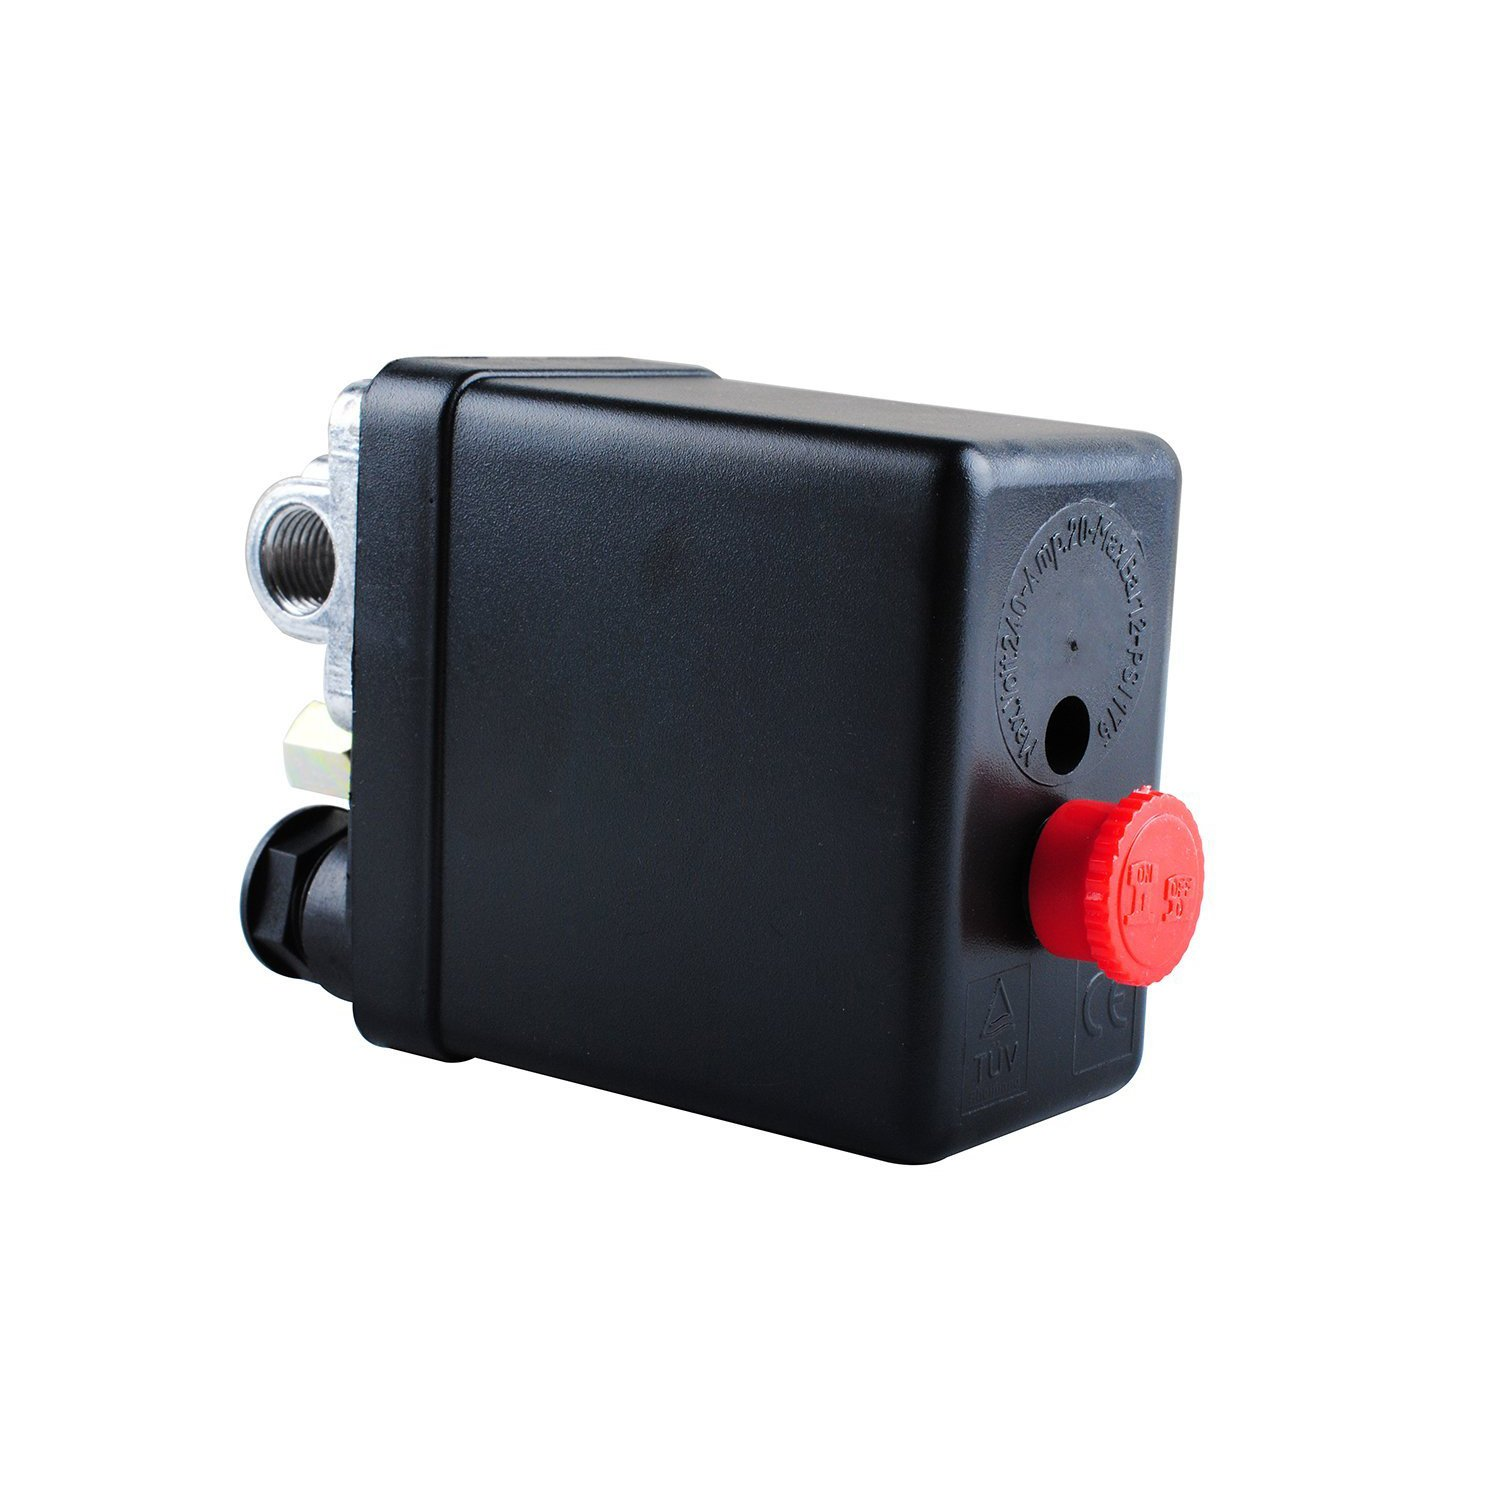 Wadoy Central Pneumatic Air Compressor Pressure Switch Control Valve Replacement Parts 90-120 PSI 240V